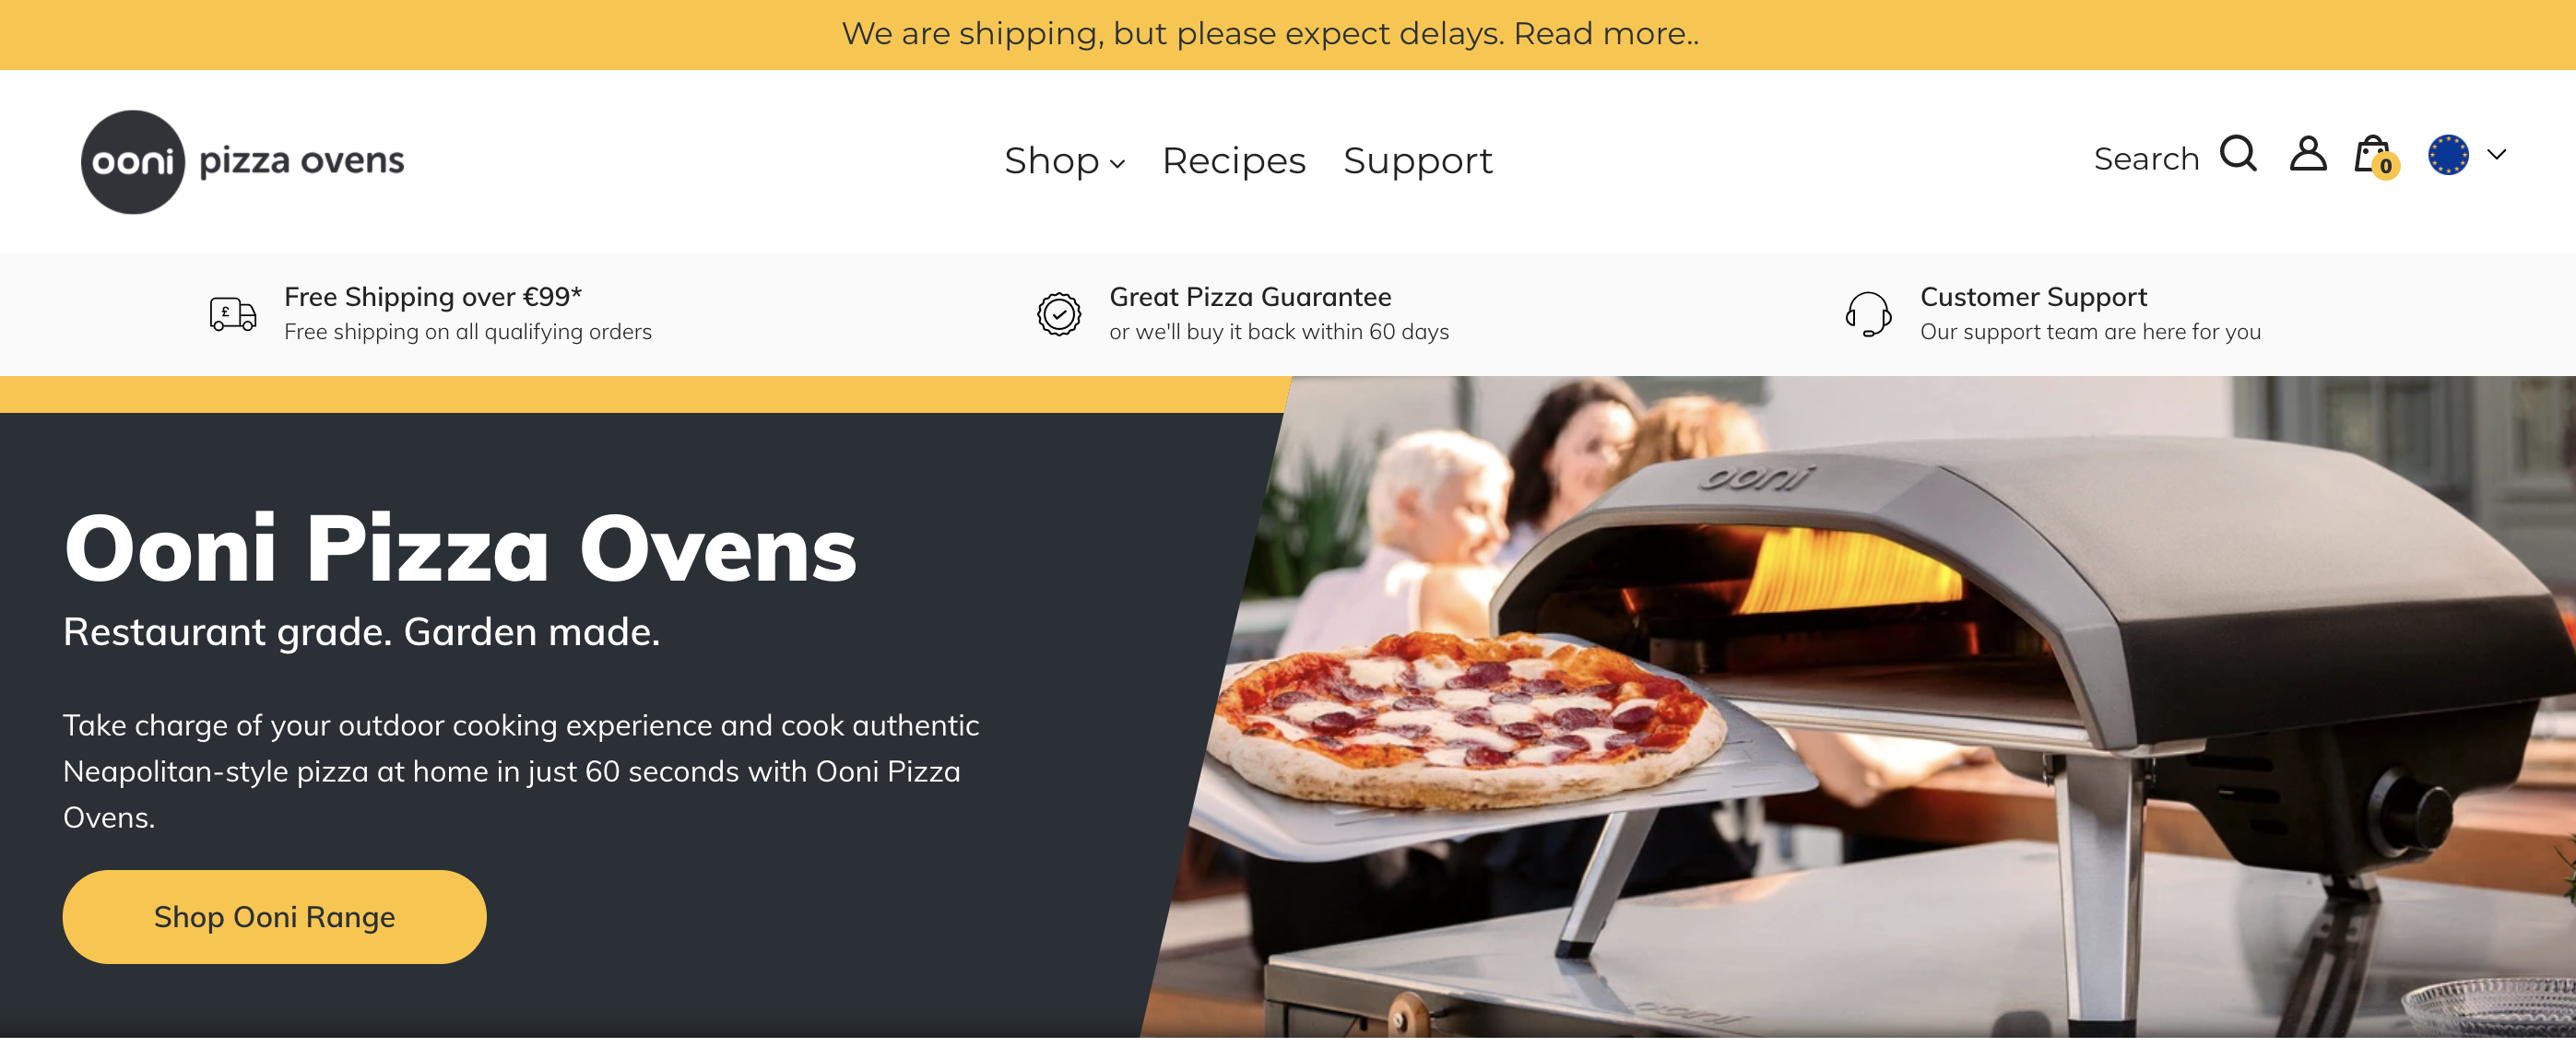 Matching email and website design by Ooni Pizza Ovens.